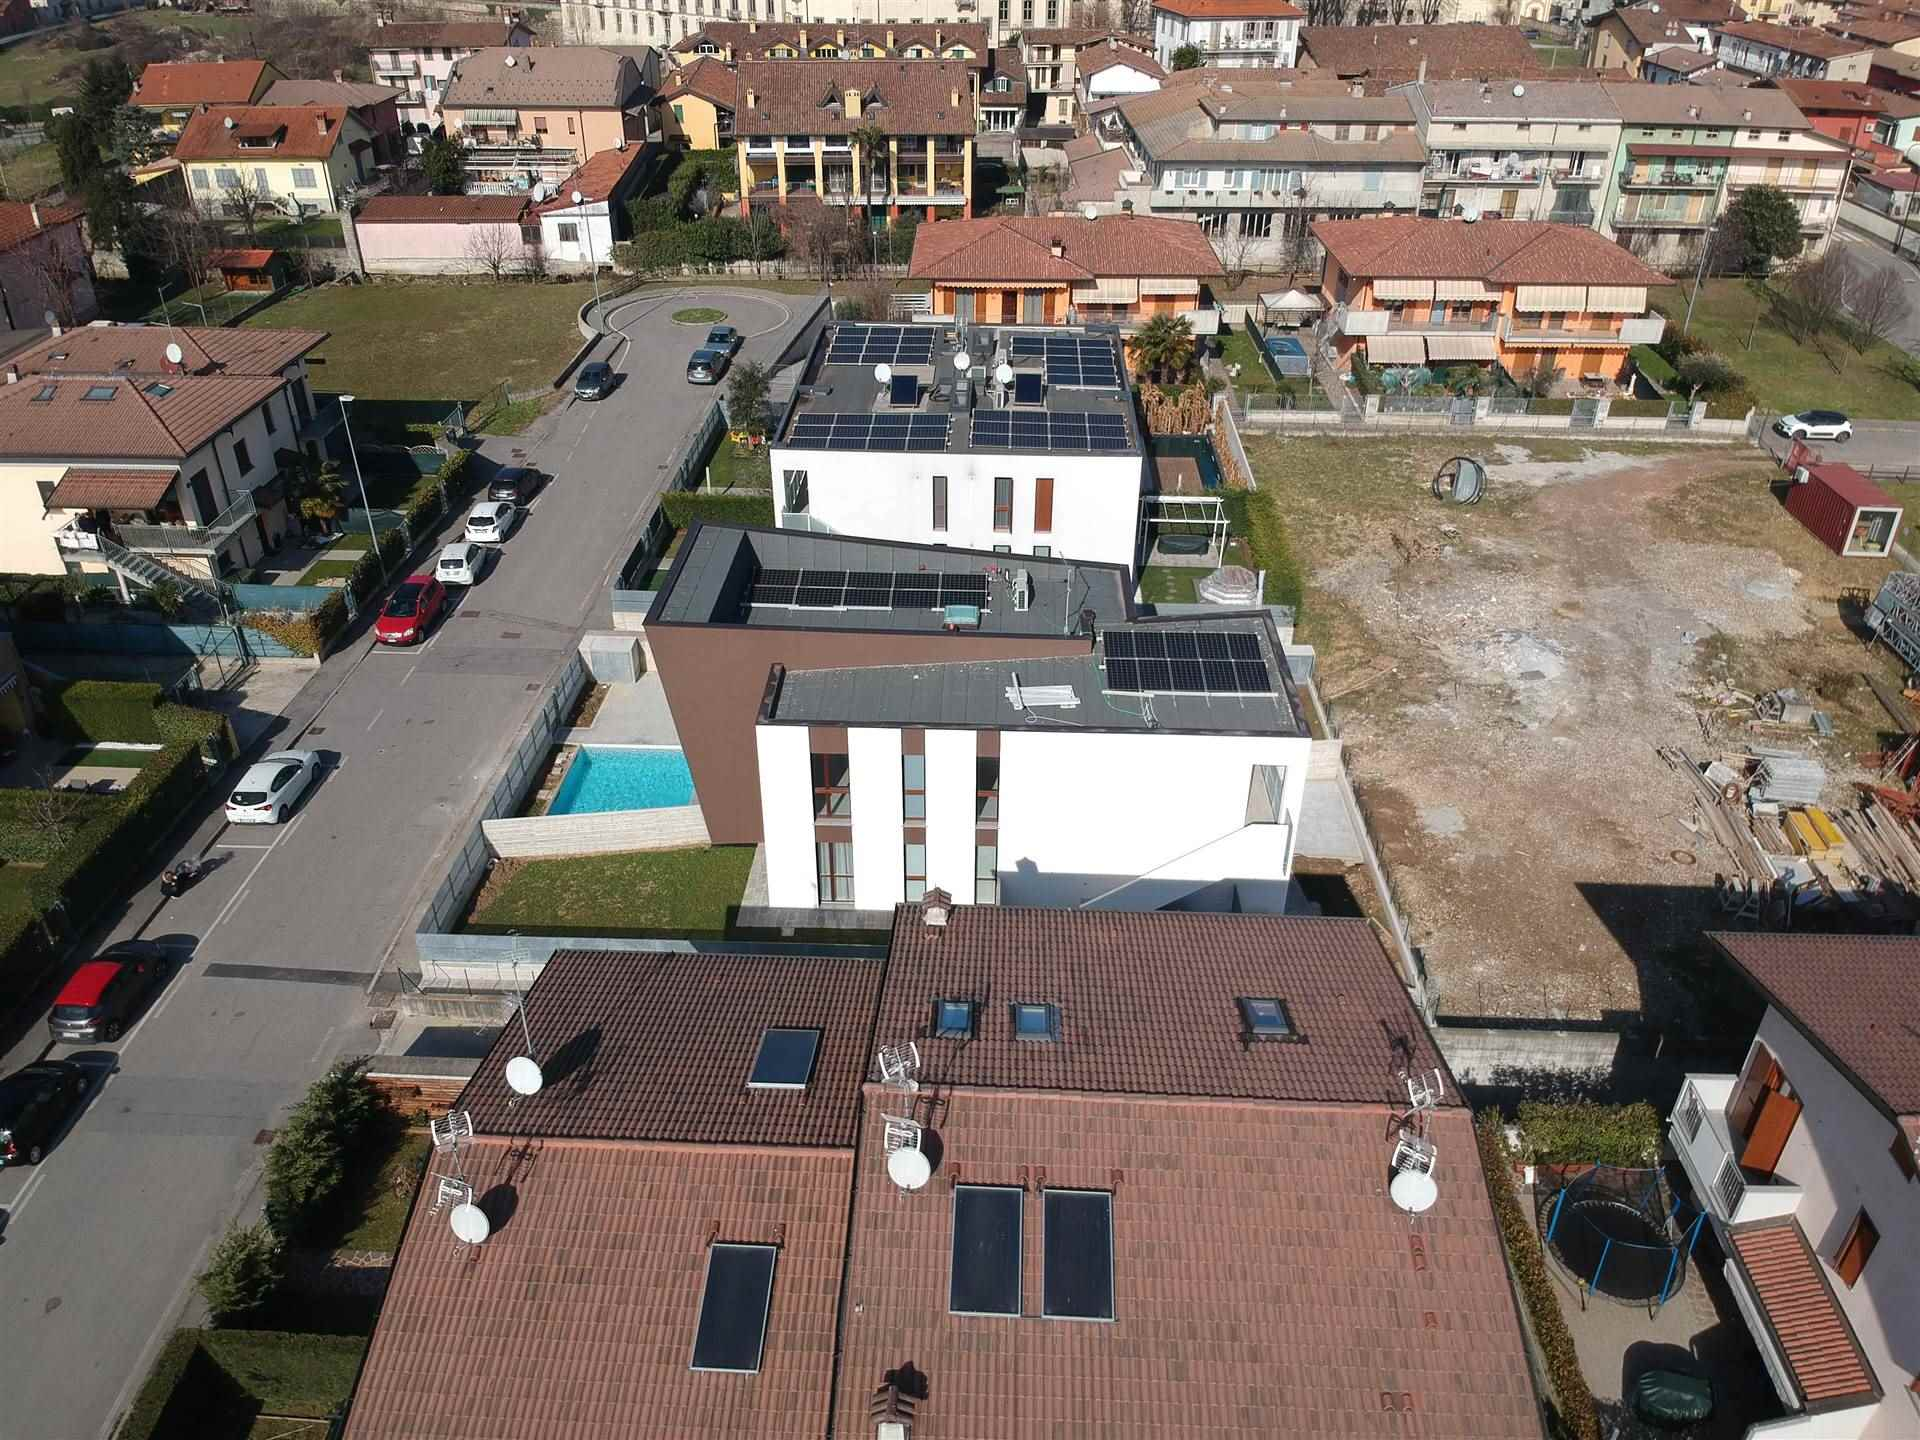 drone cantiere 1